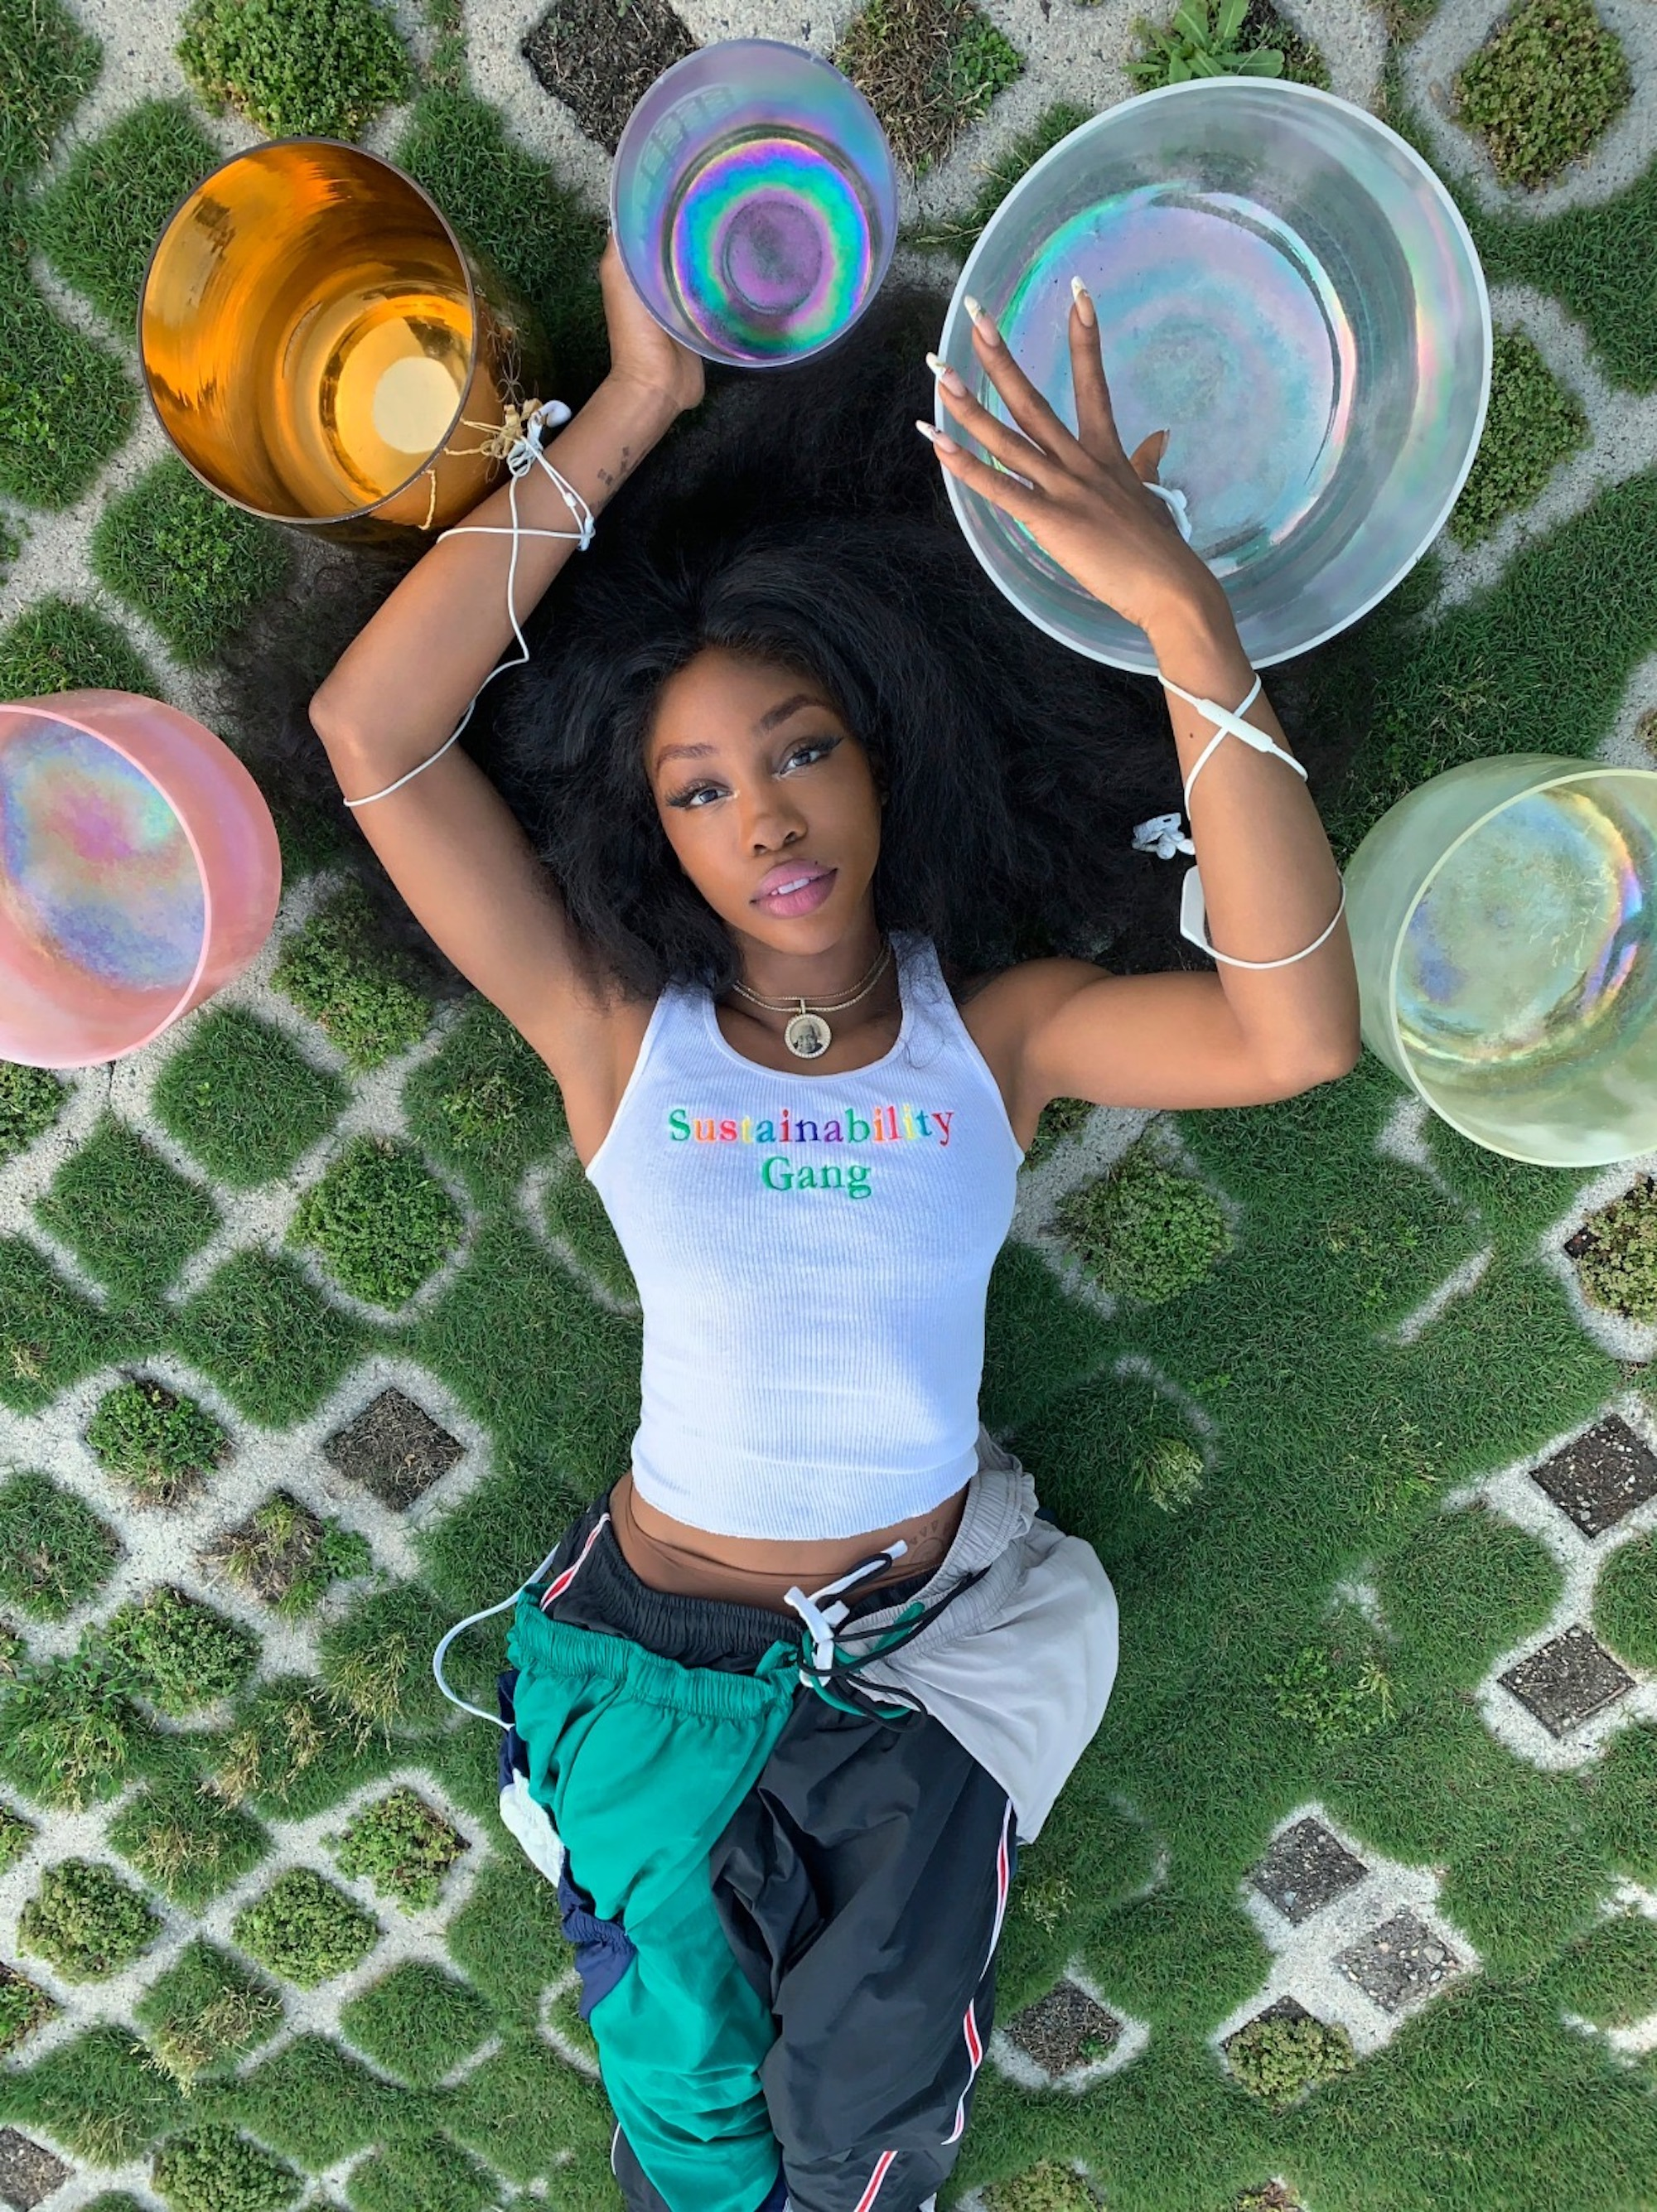 SZA with various bowls of water around her lying the grass